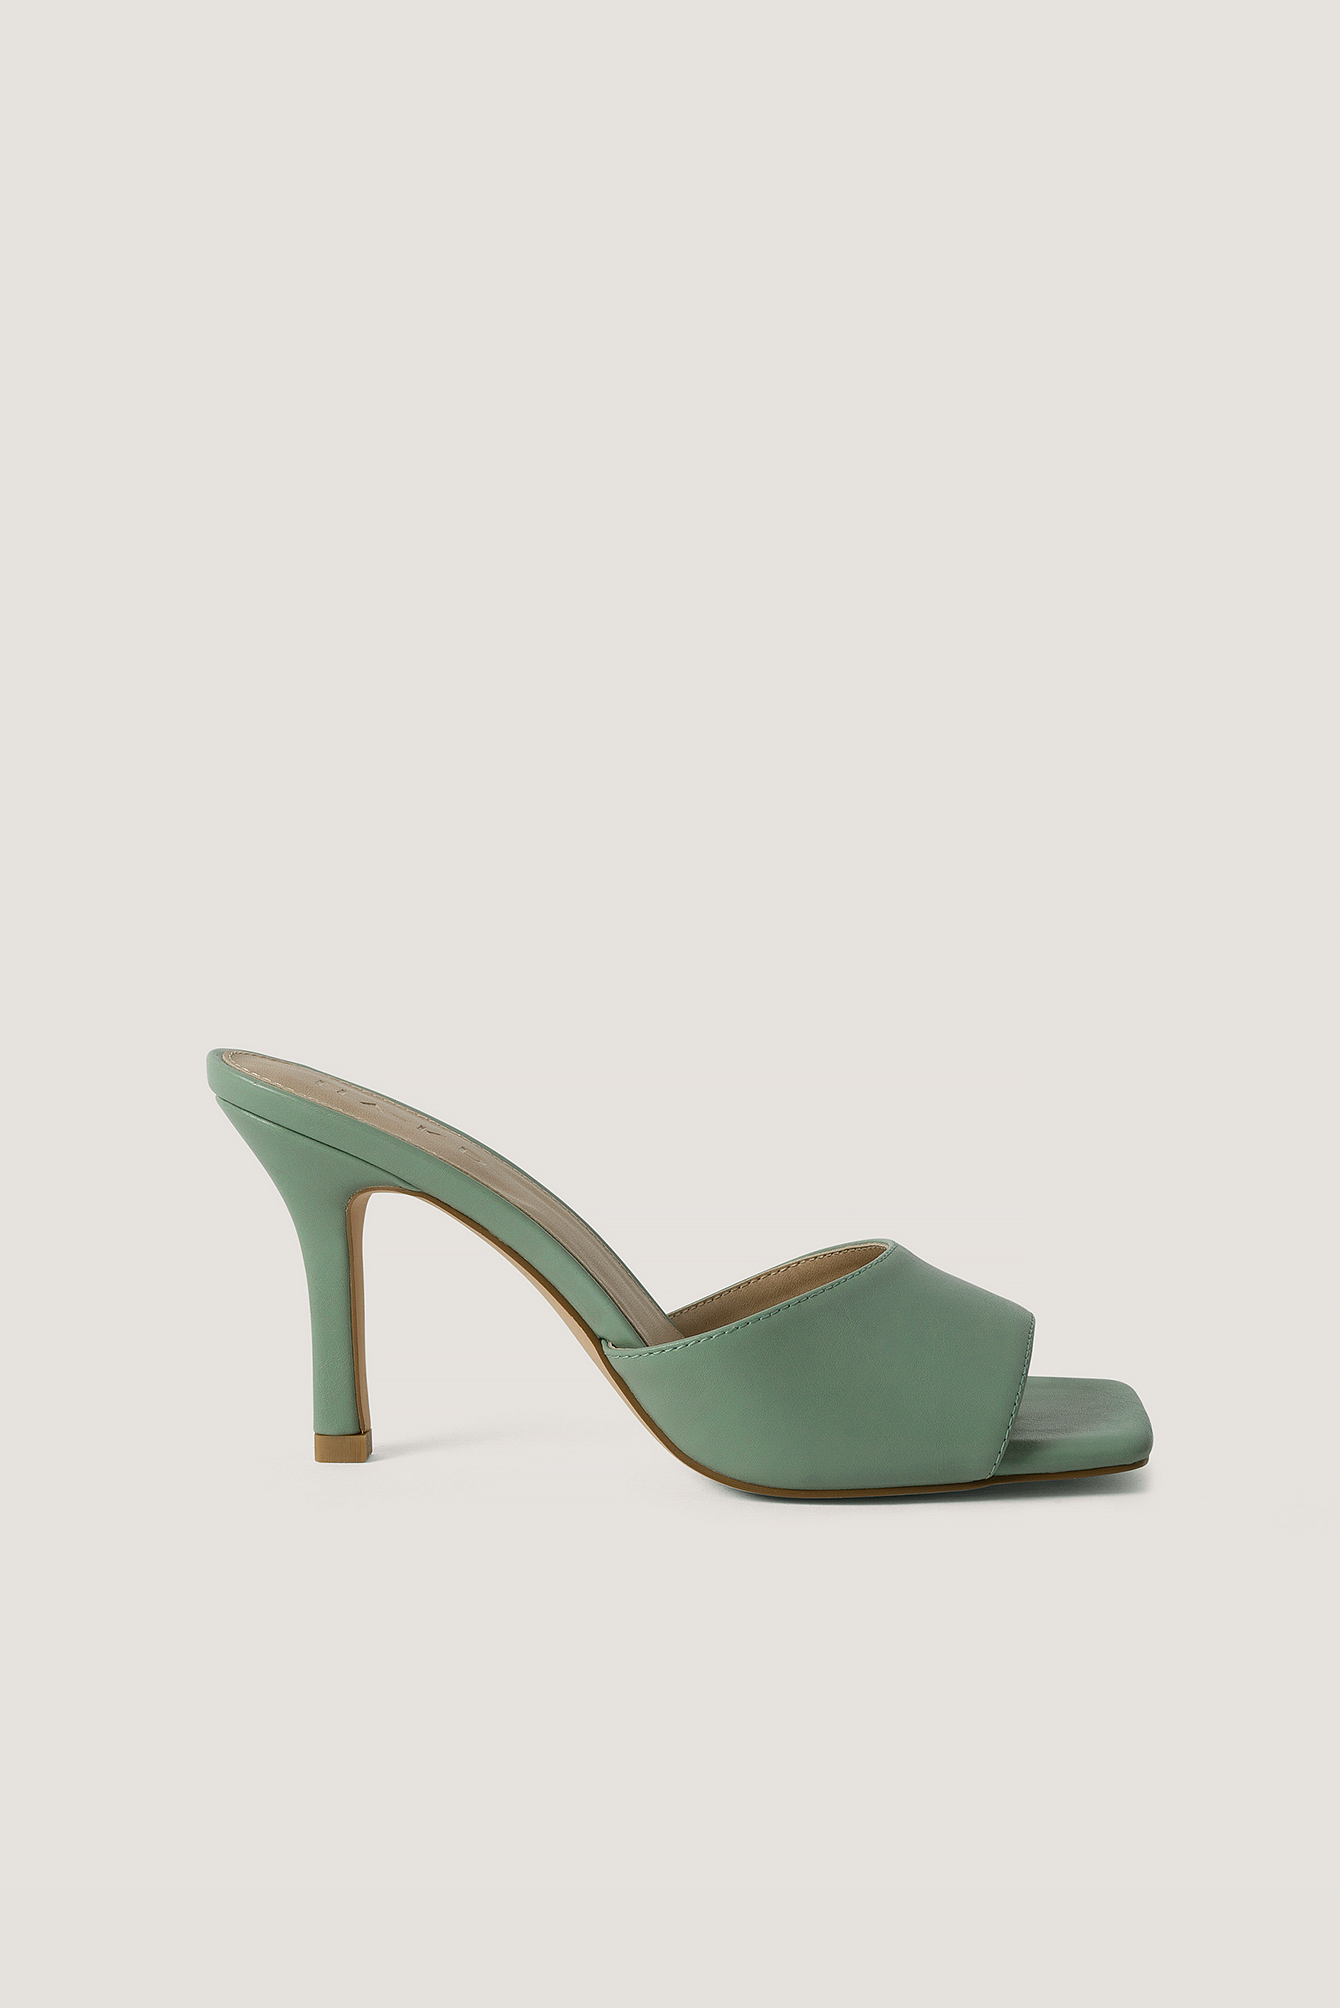 Dusty Green Squared Toe Stiletto Mules